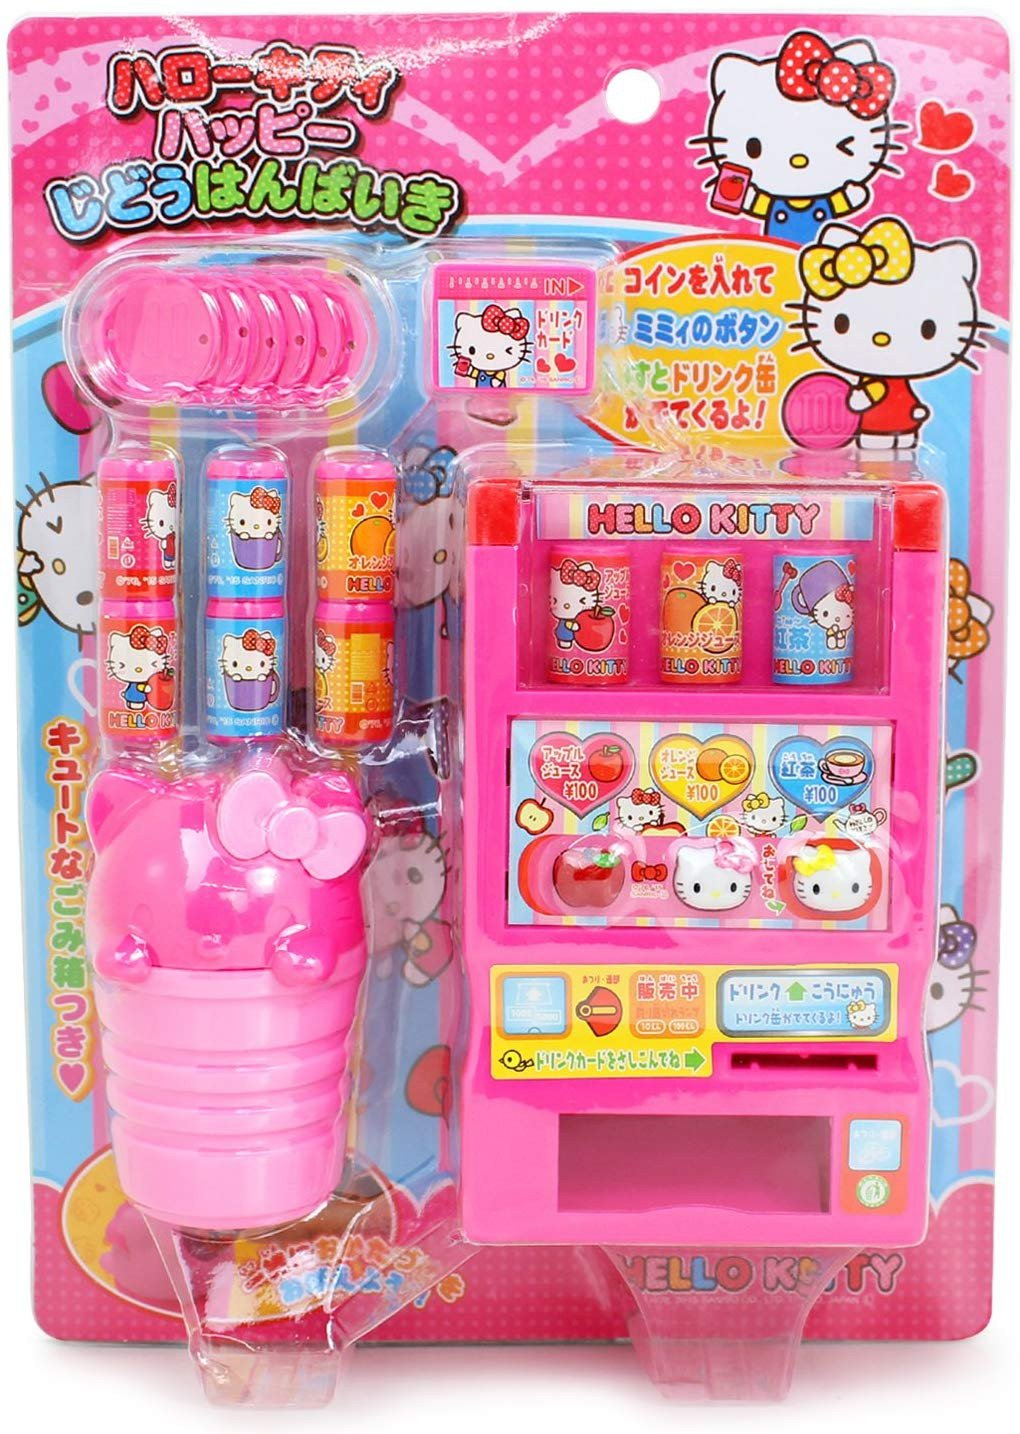 Hello Kitty Bedroom In A Box Best Of Hello Kitty toy Vending Machine with Coins Juice and Other Accessories Japan Import